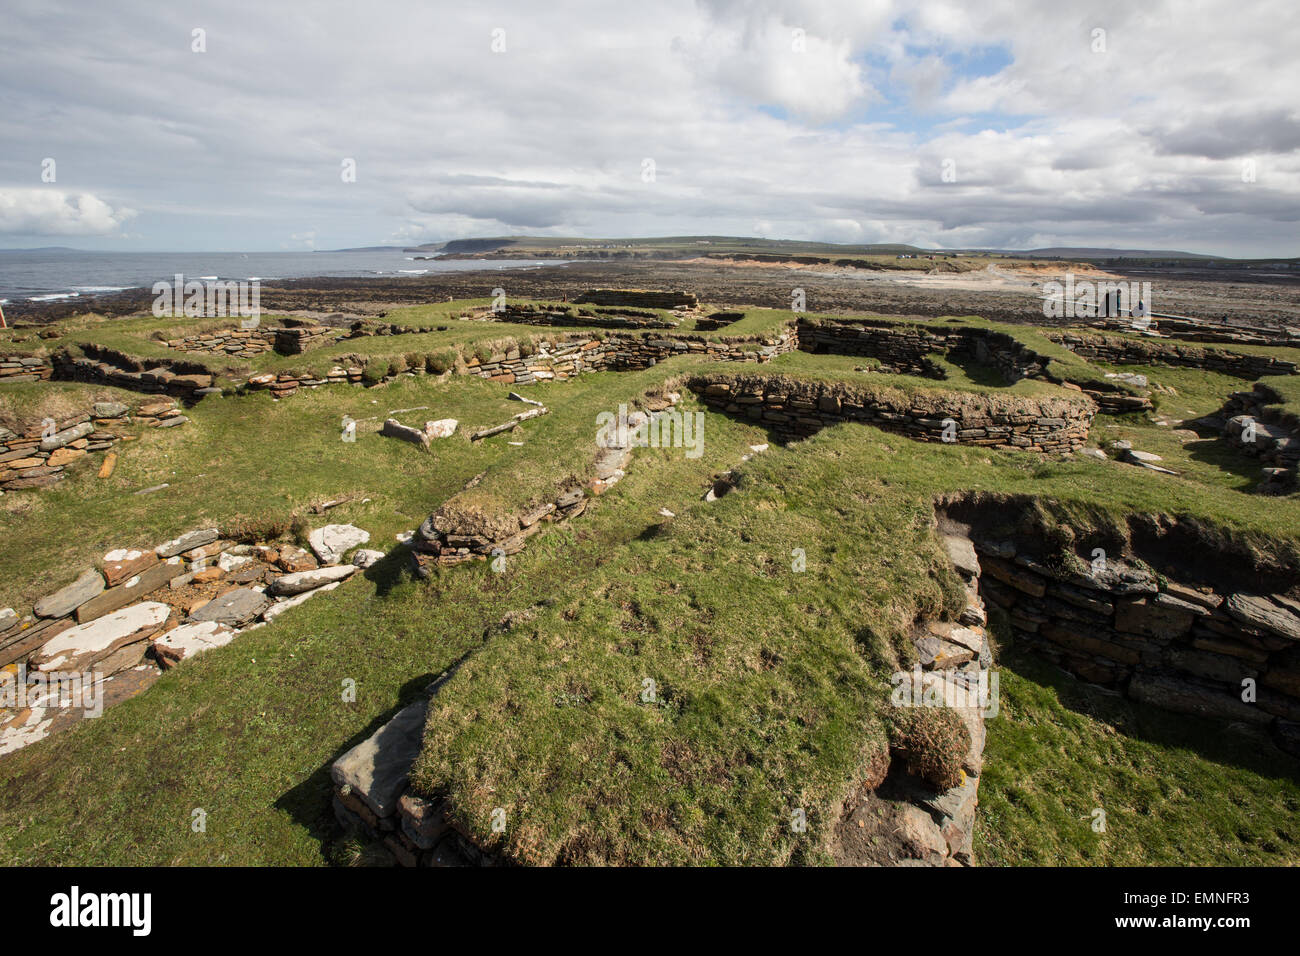 Brough of Birsay Norse settlement, Orkney, Scotland - Stock Image